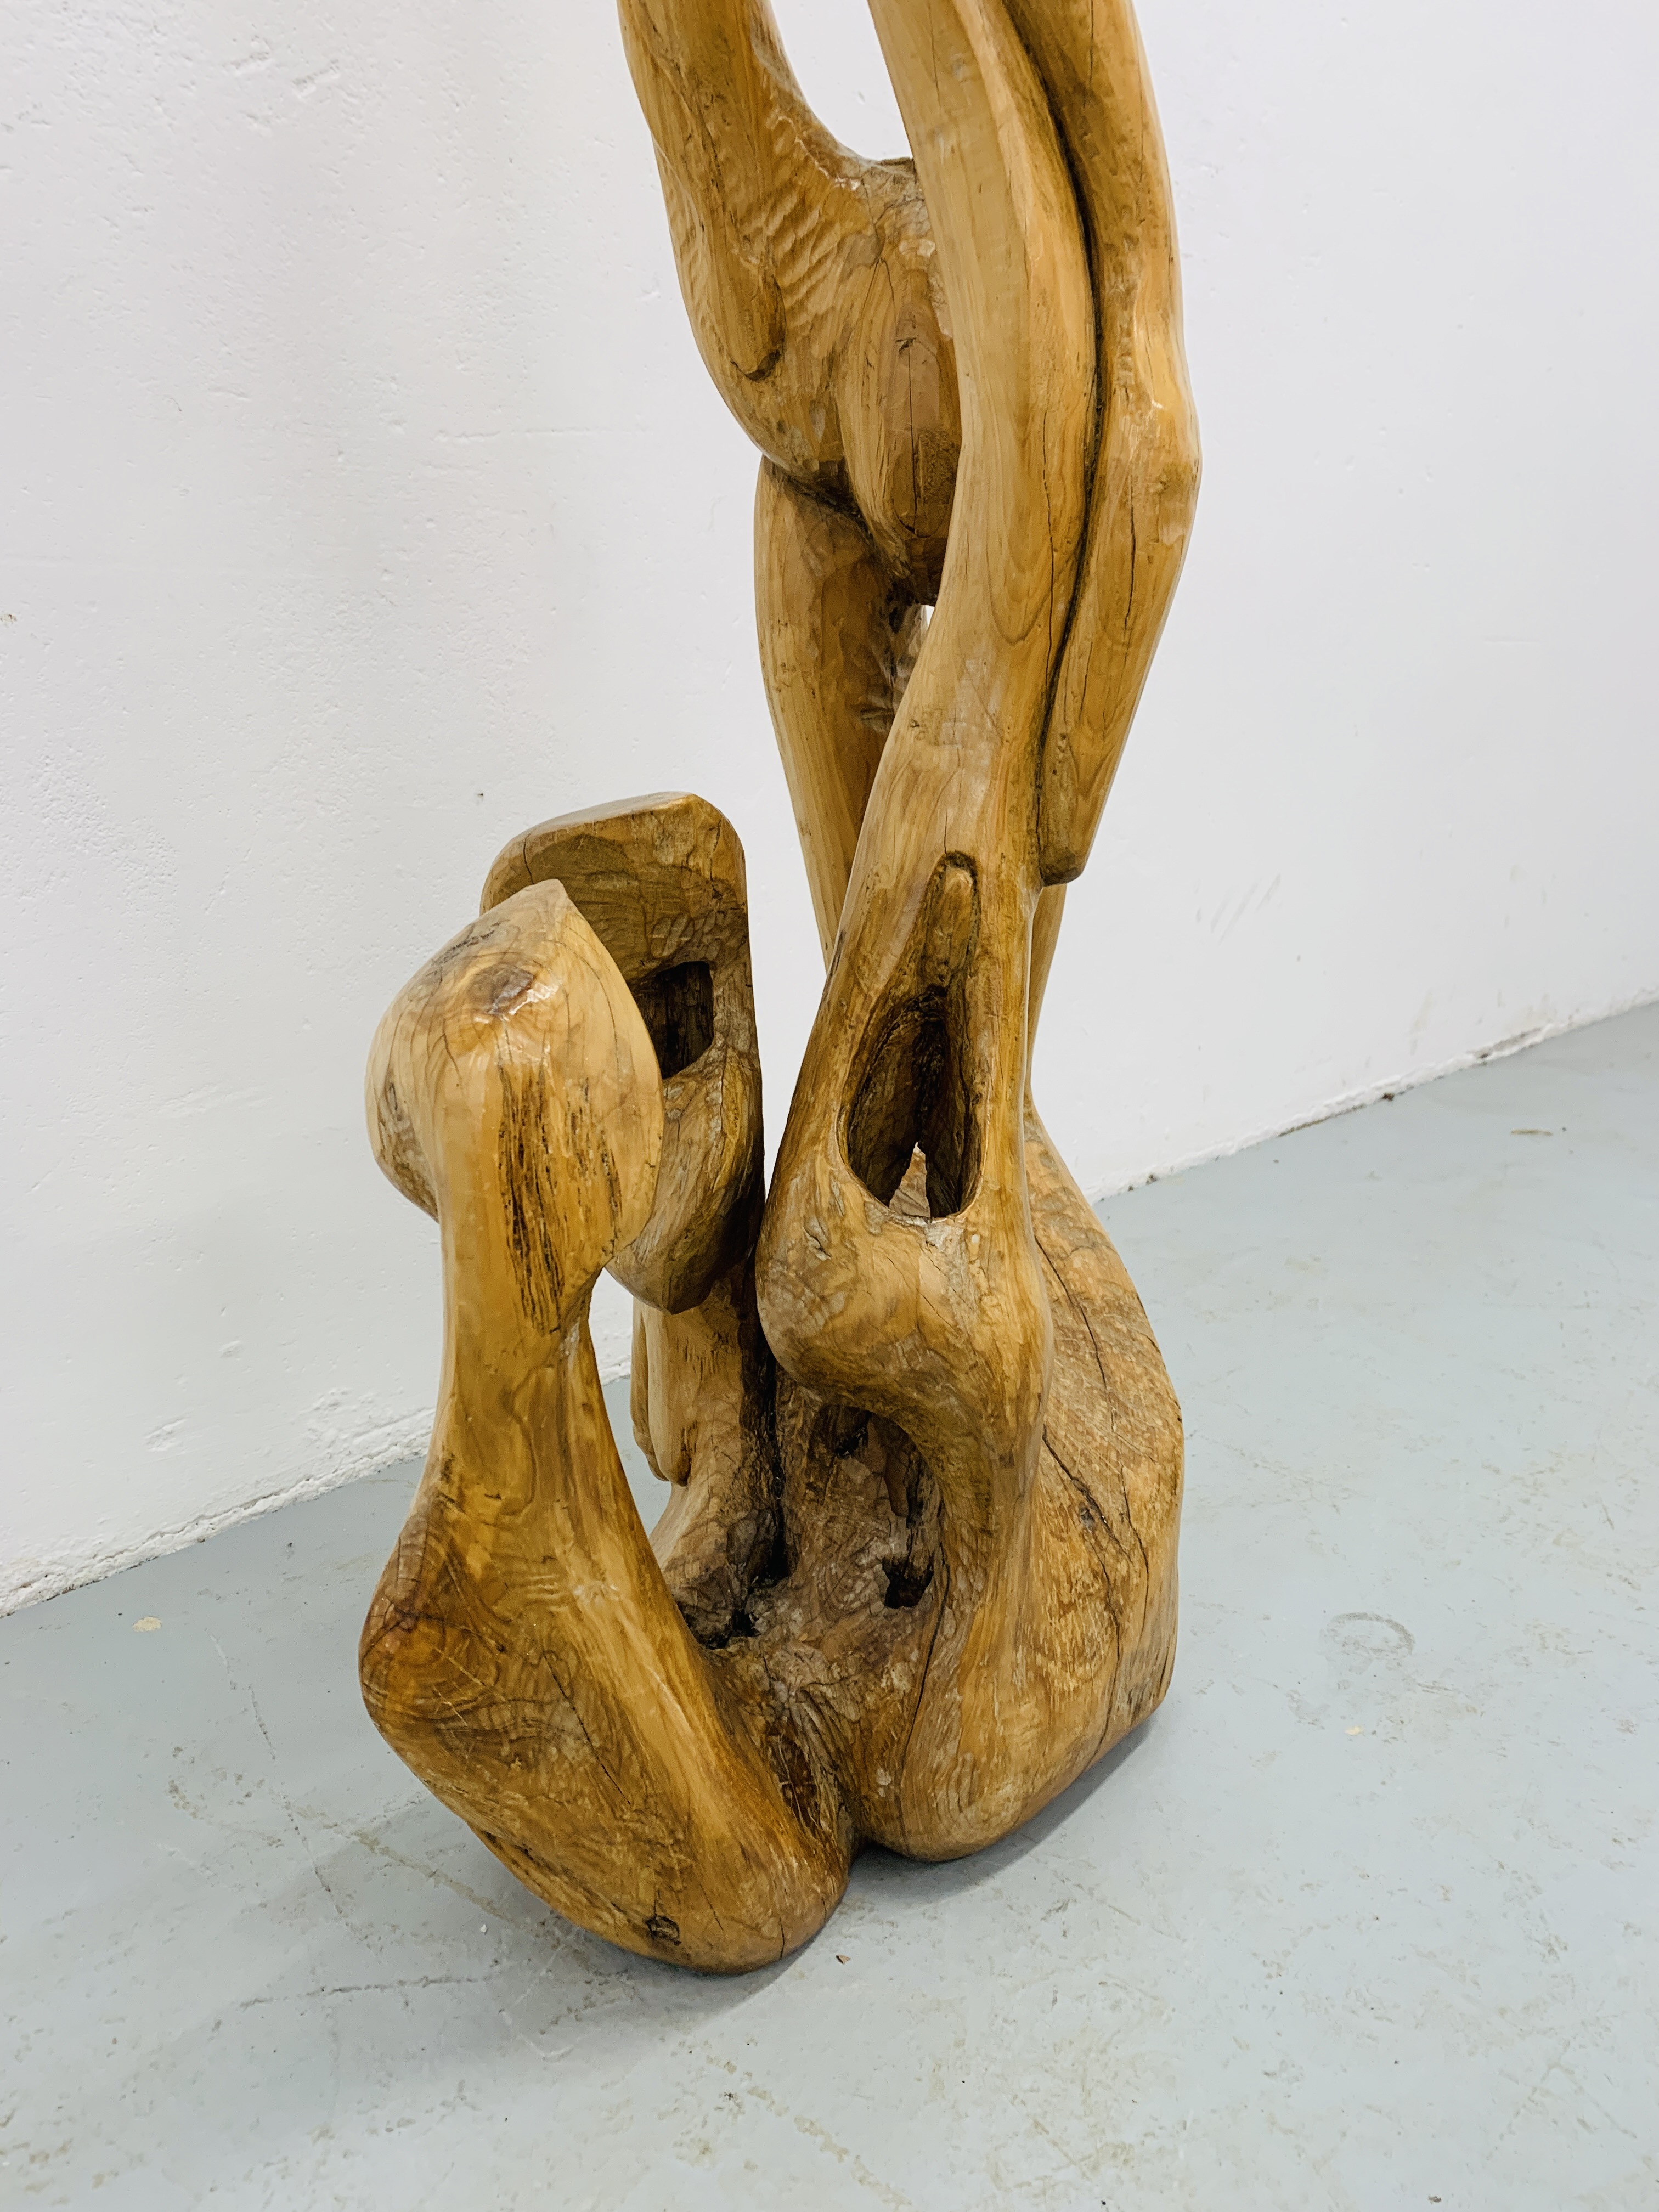 """A HARDWOOD ABSTRACT SCULPTURE """"FAMILY"""" BY P.T. - Image 6 of 9"""